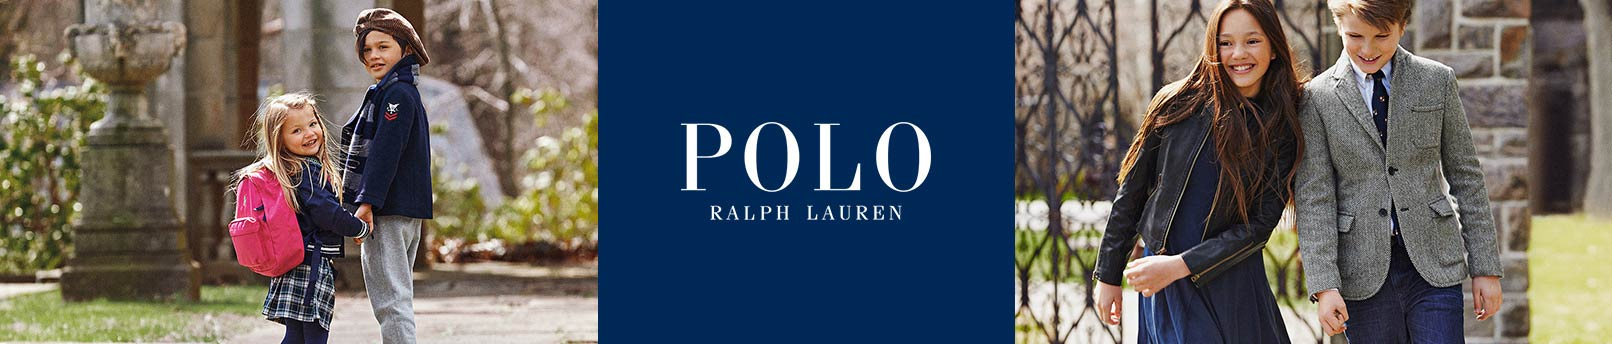 Polo Ralph Lauren shoppen